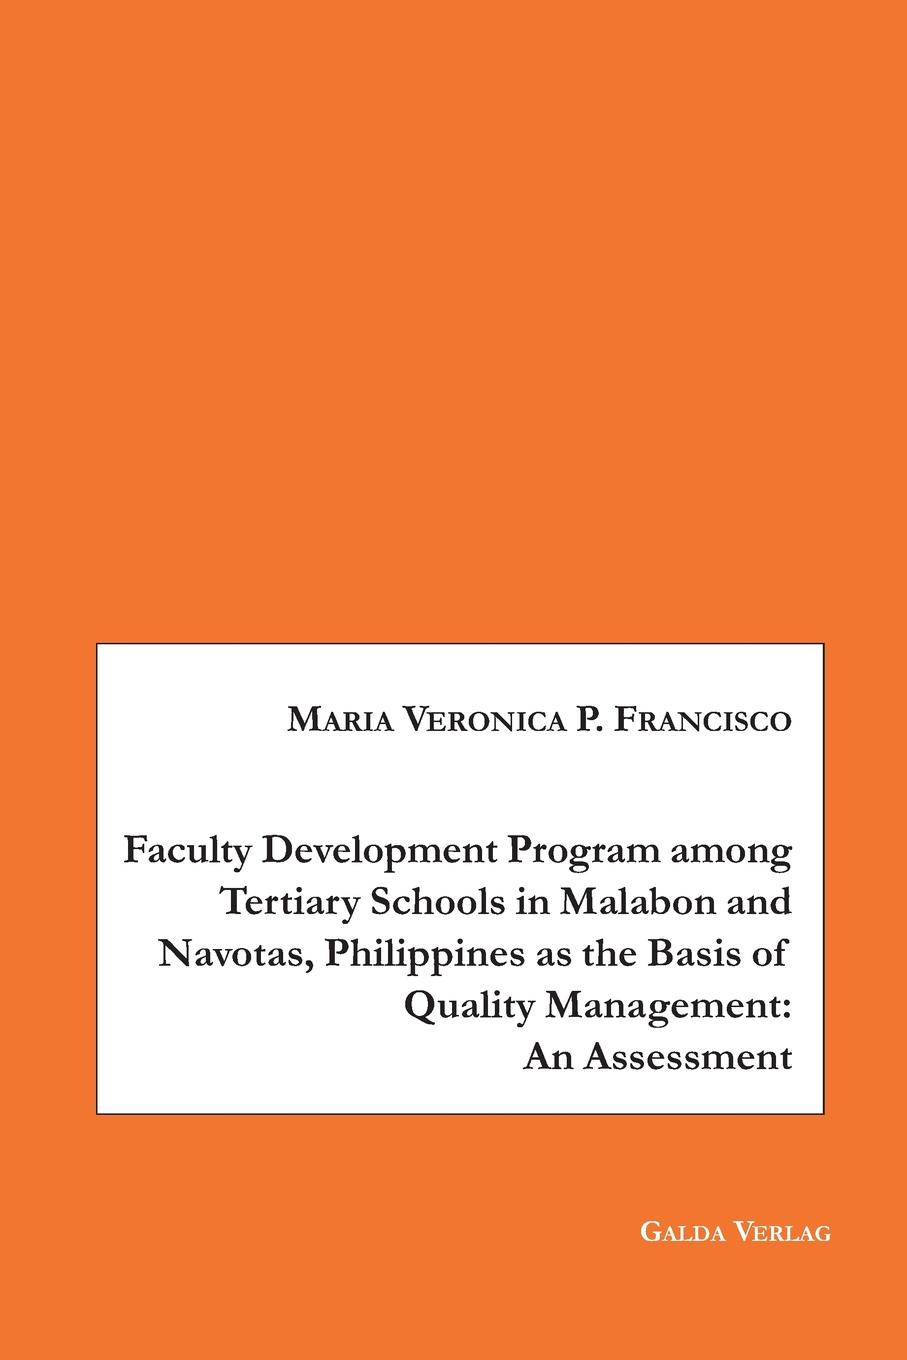 Maria Veronica P. Francisco Faculty Development Program among Tertiary Schools in Malabon and Navotas, Philippines as the Basic of Quality Management. An Assessment kofan lee impacts of family styles and adventure program on intrinsic motivation